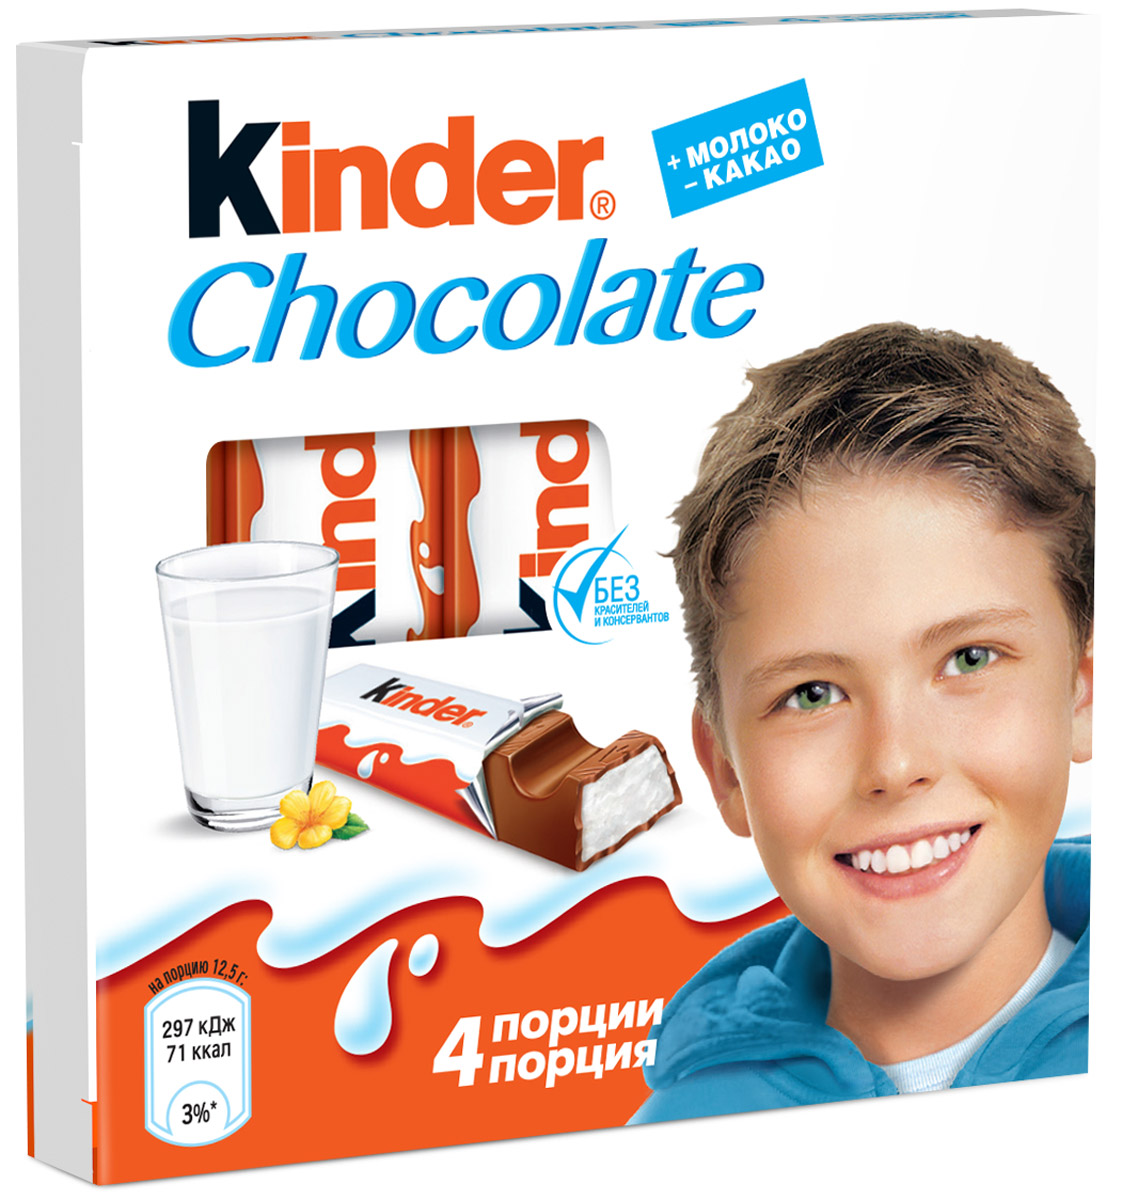 Kinder Chocolate шоколад молочный с молочной начинкой, 50 г райская птица молочный шоколад 38% с черникой 85 г